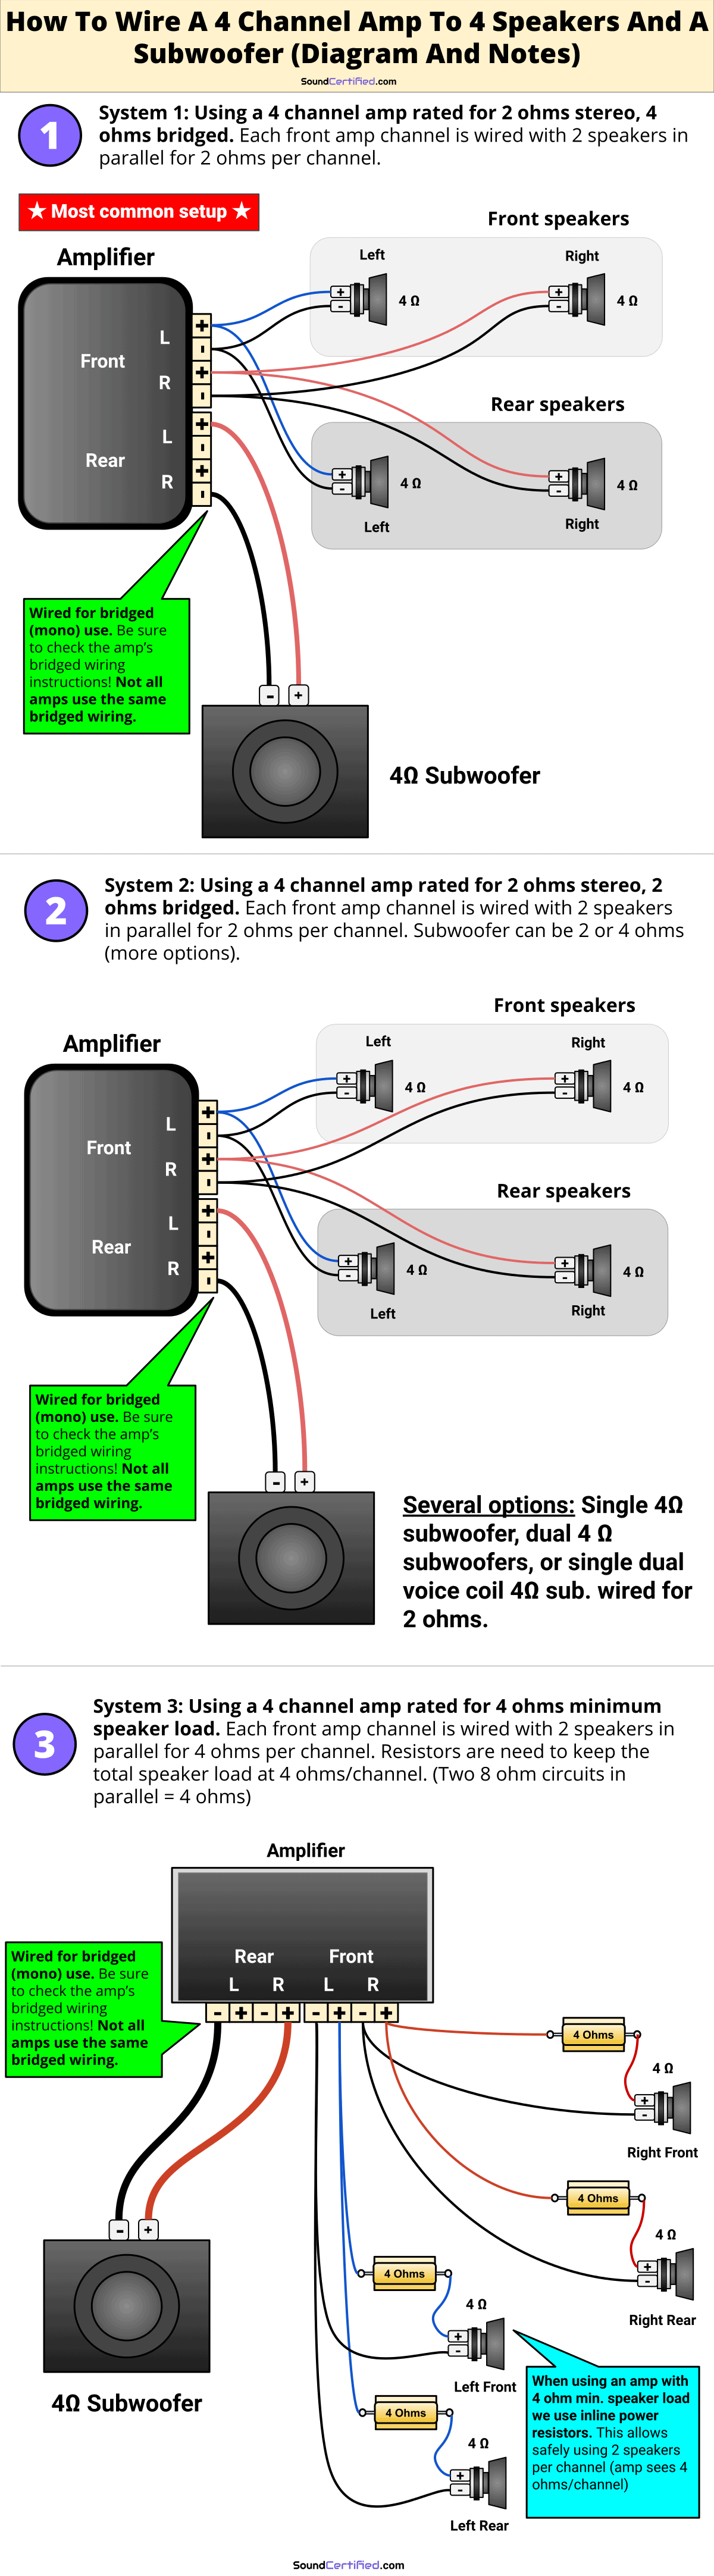 4 Channel Amp 2 Speaker 1 Sub Wiring Diagram